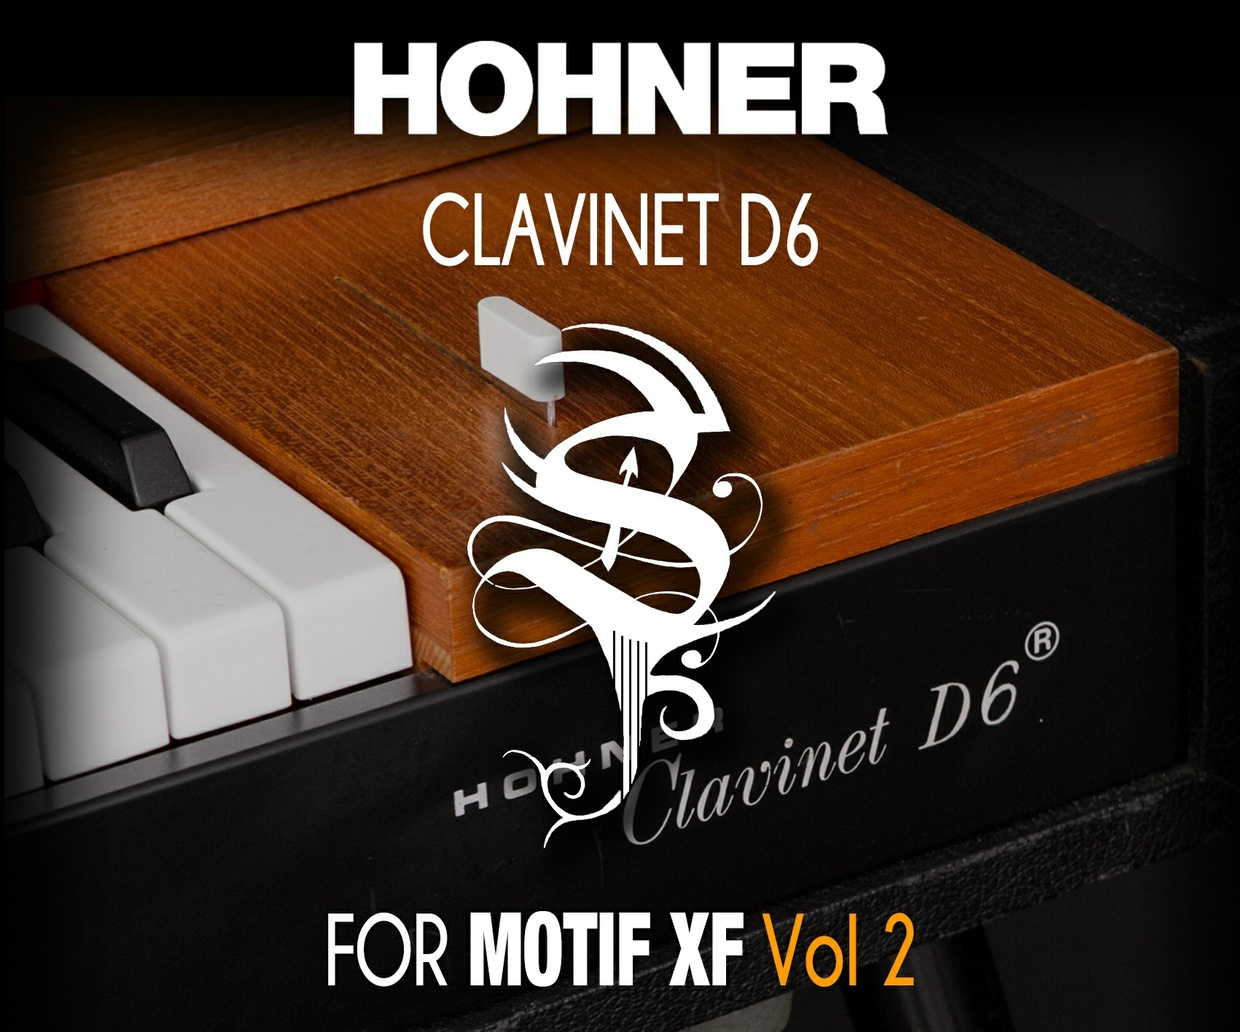 Clavinet D6 for MOTIF XF Vol 2